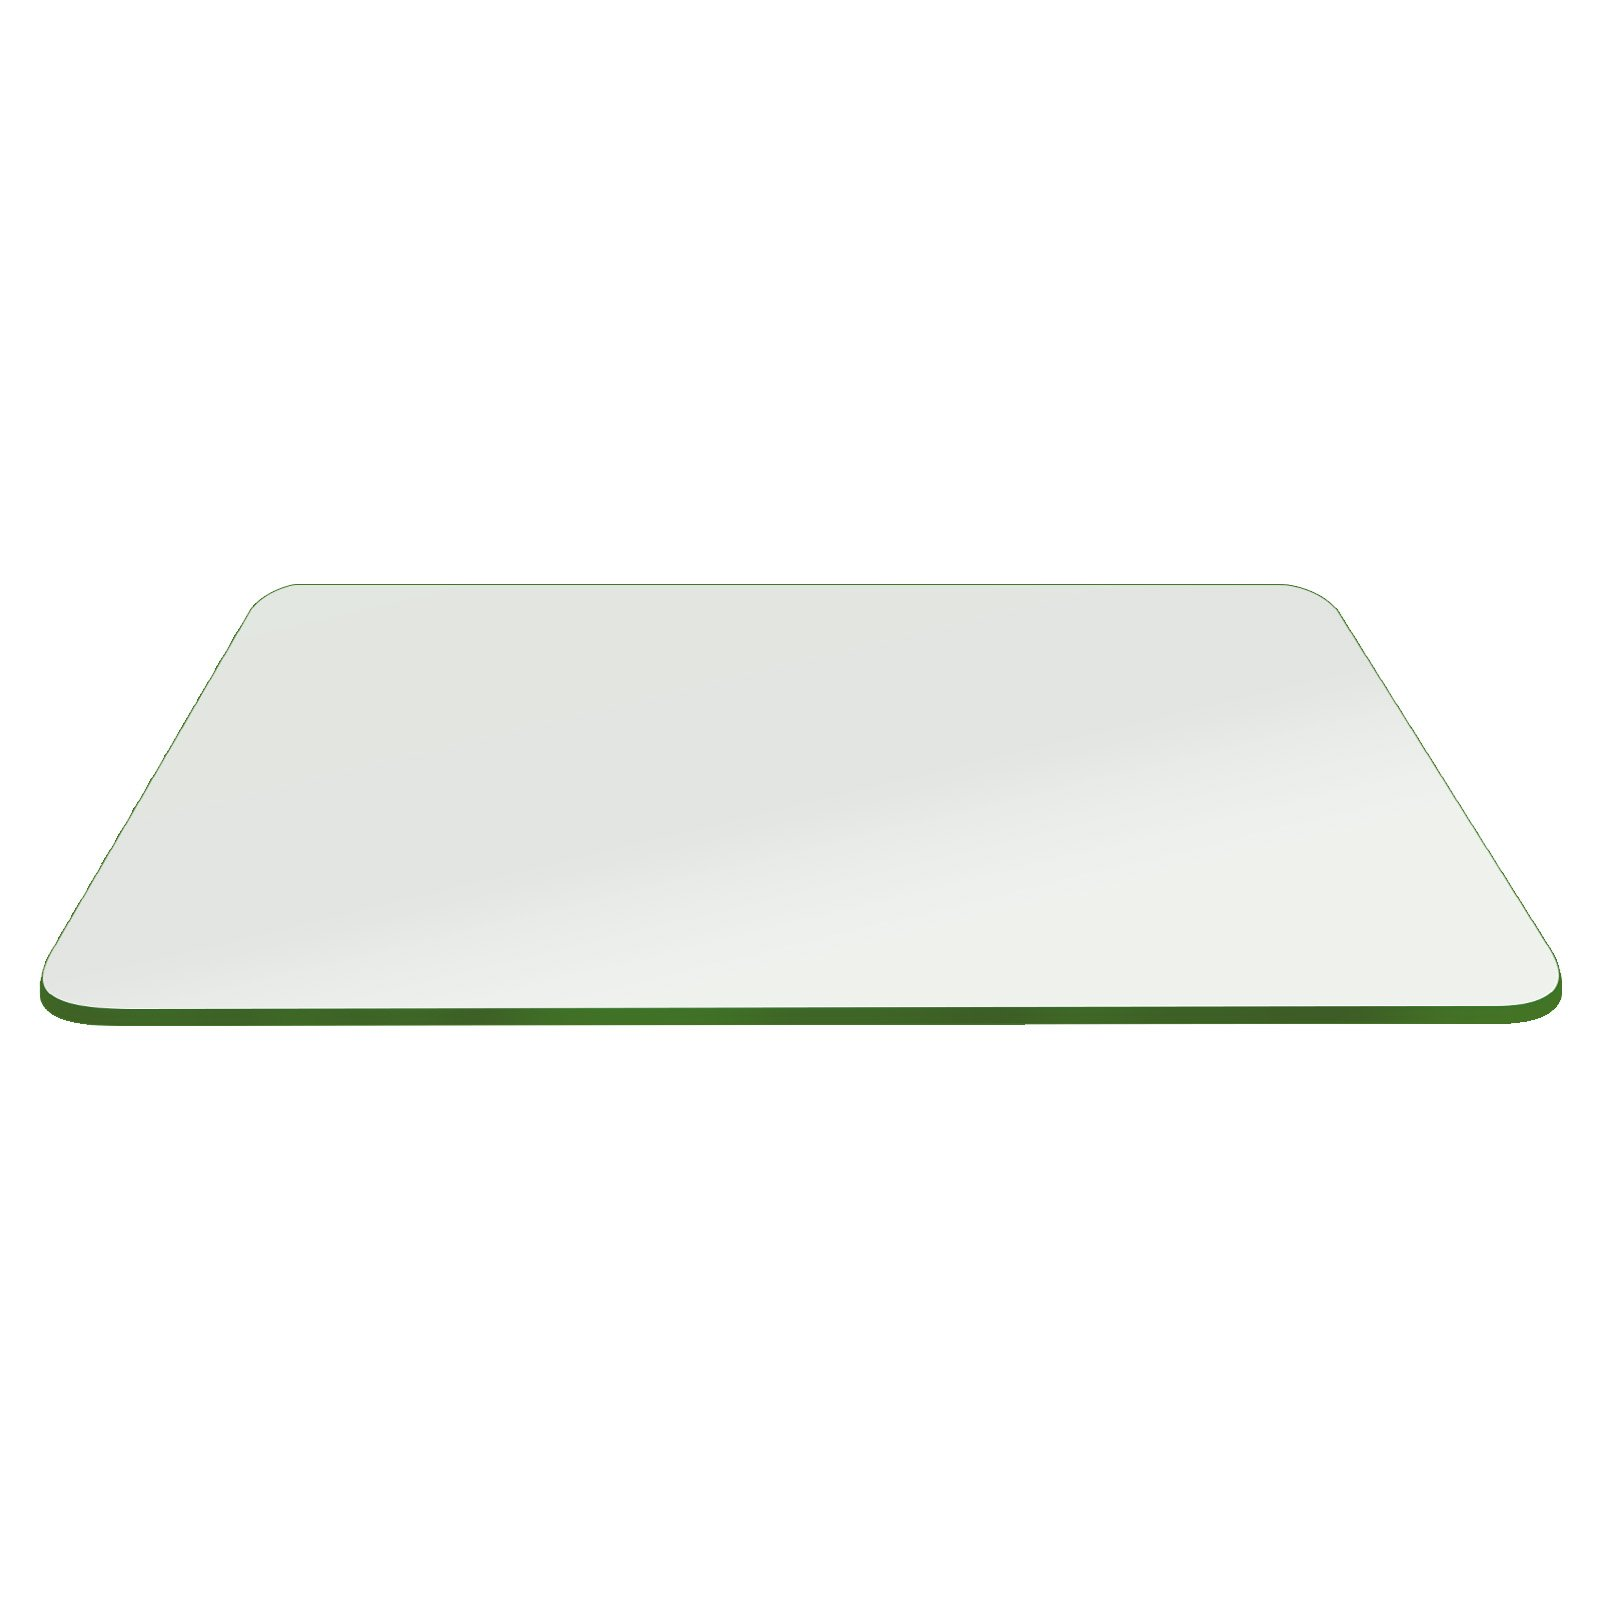 Fab Glass and Mirror 16x24RECT10THPETE-T Rectangle Tempered Glass Table Top, 16'' x 24'' by Fab Glass and Mirror (Image #1)